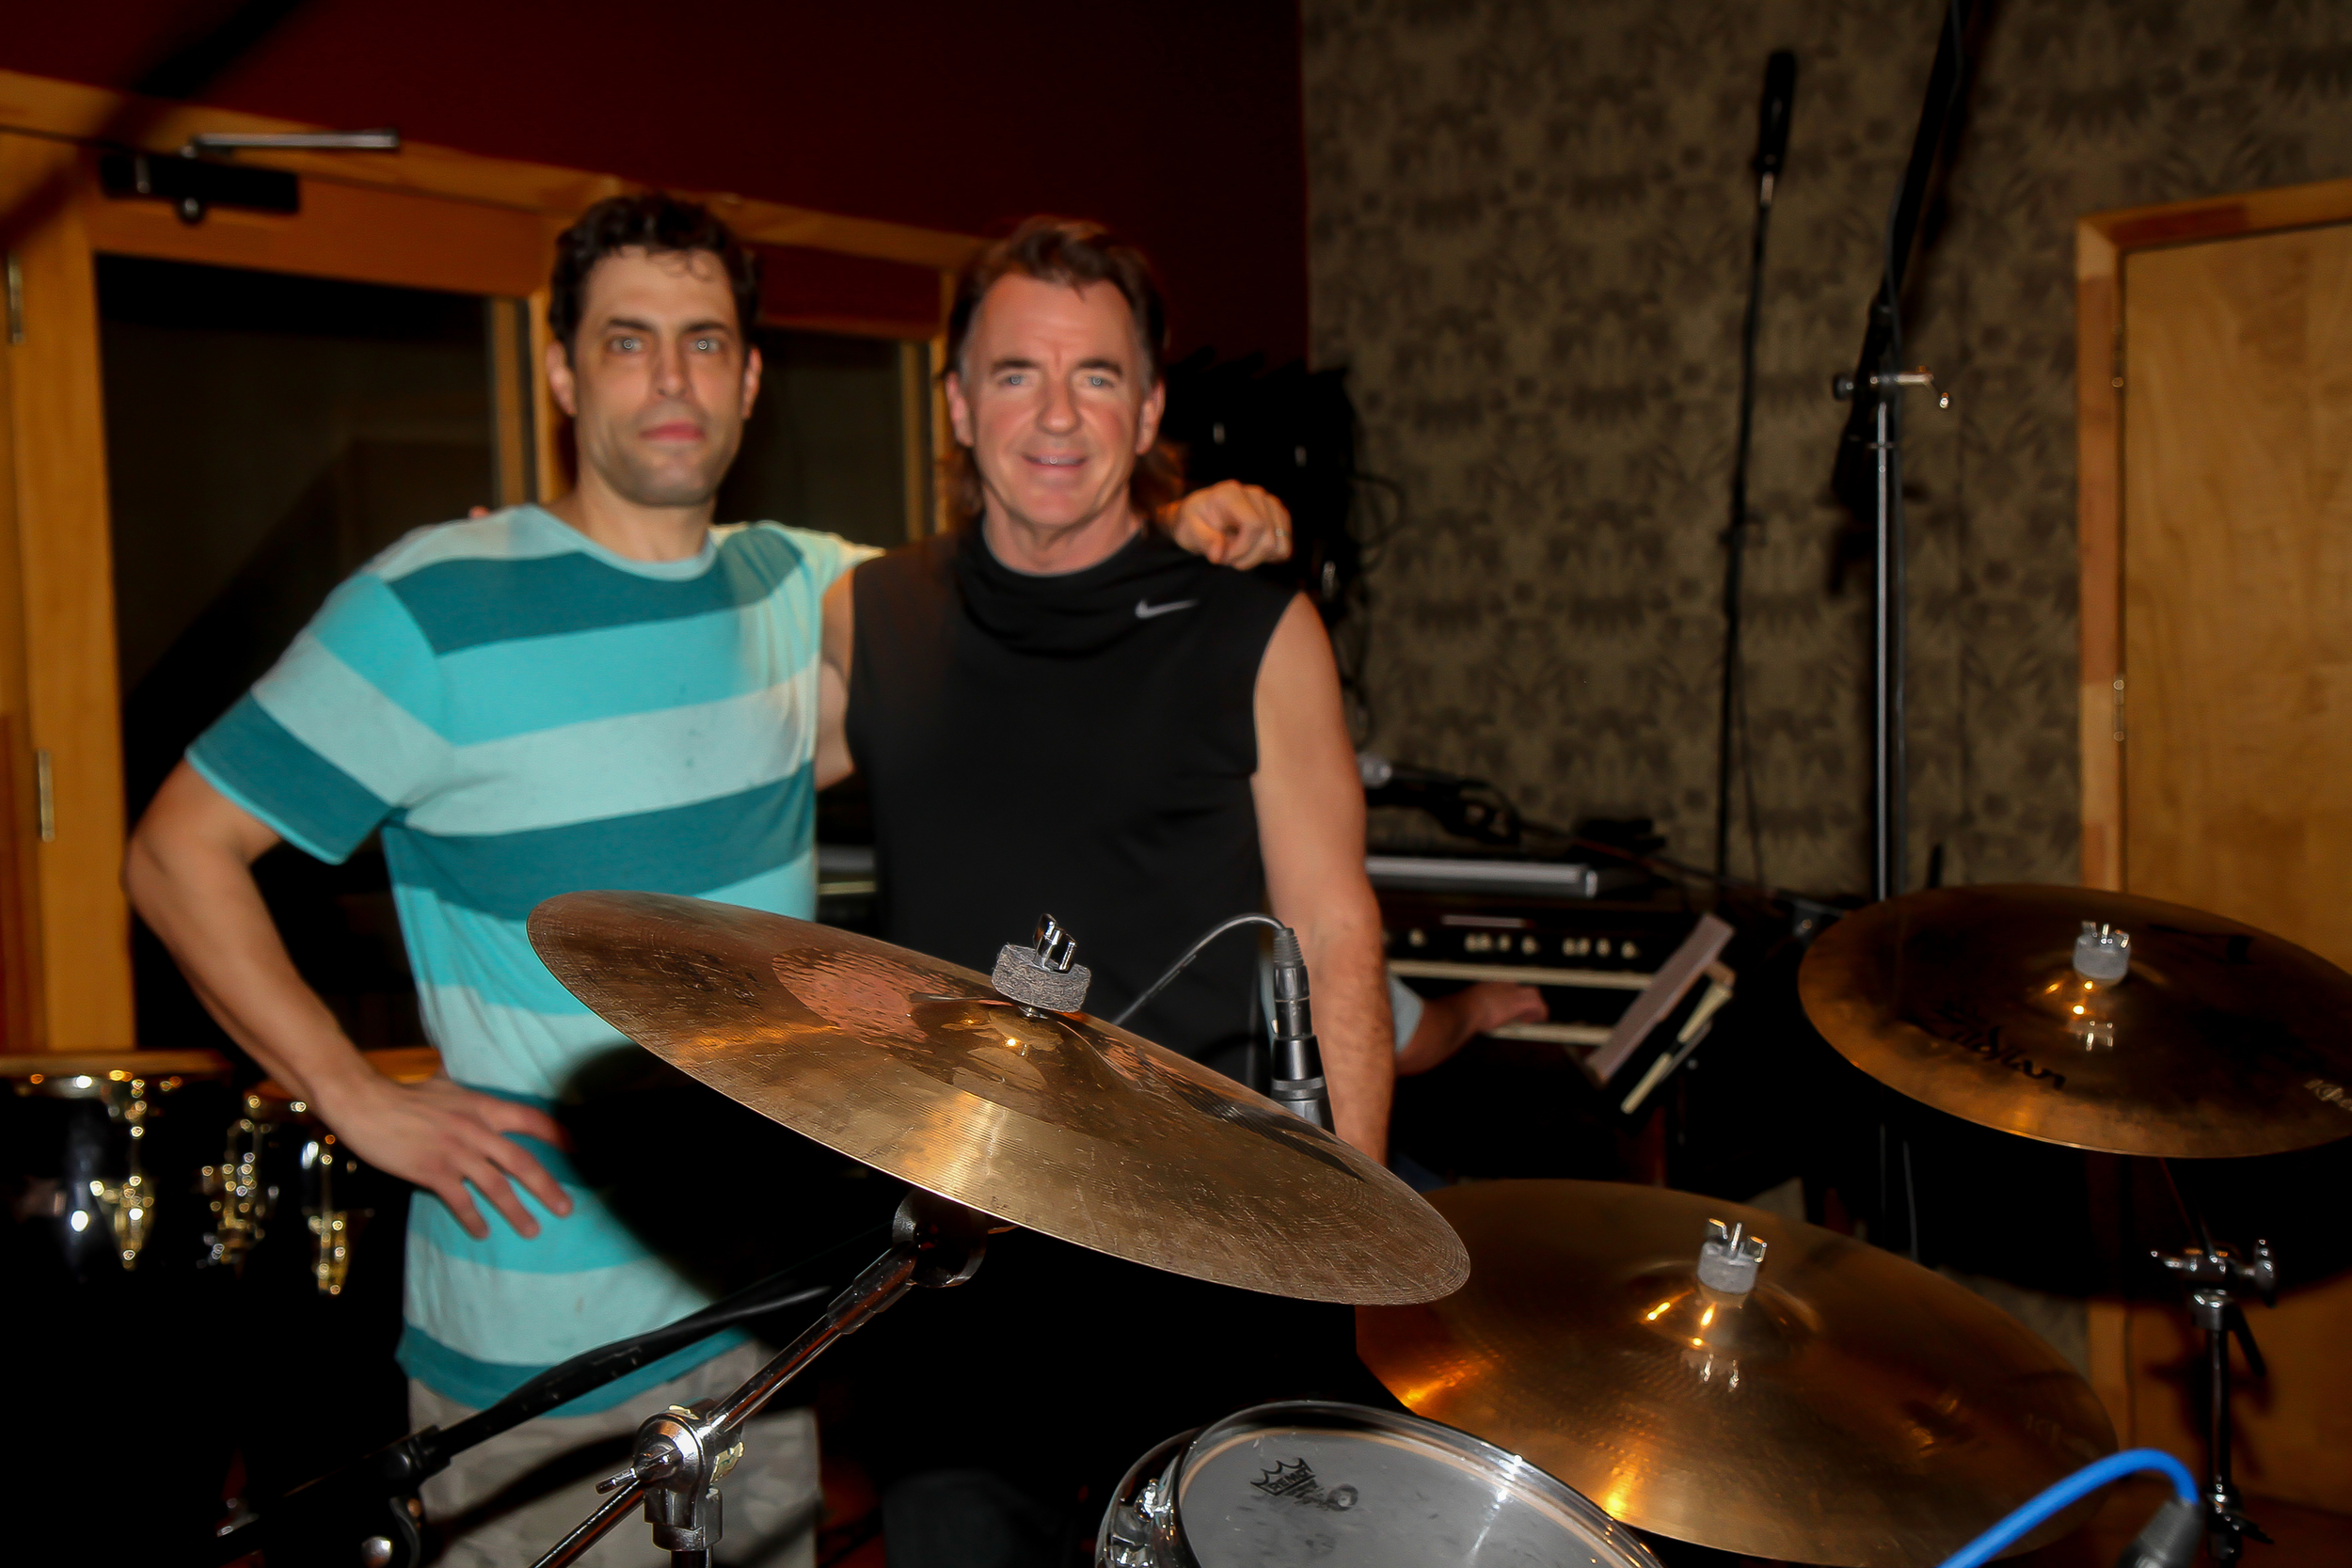 Wayne Killius, drummer extraordinaire, with a touch of Stewart Copeland thrown in for fun!